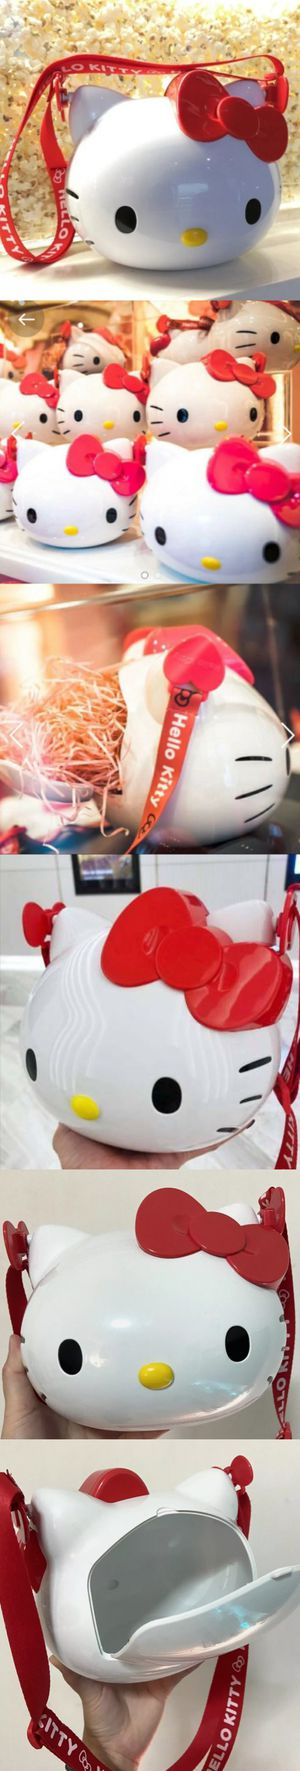 """¤RARE¤ BRAND NEW Hello Kitty """"Popcorn Bucket"""" Purse Bag strap ¤IMPORTED¤ for Sale in City of Industry, CA"""